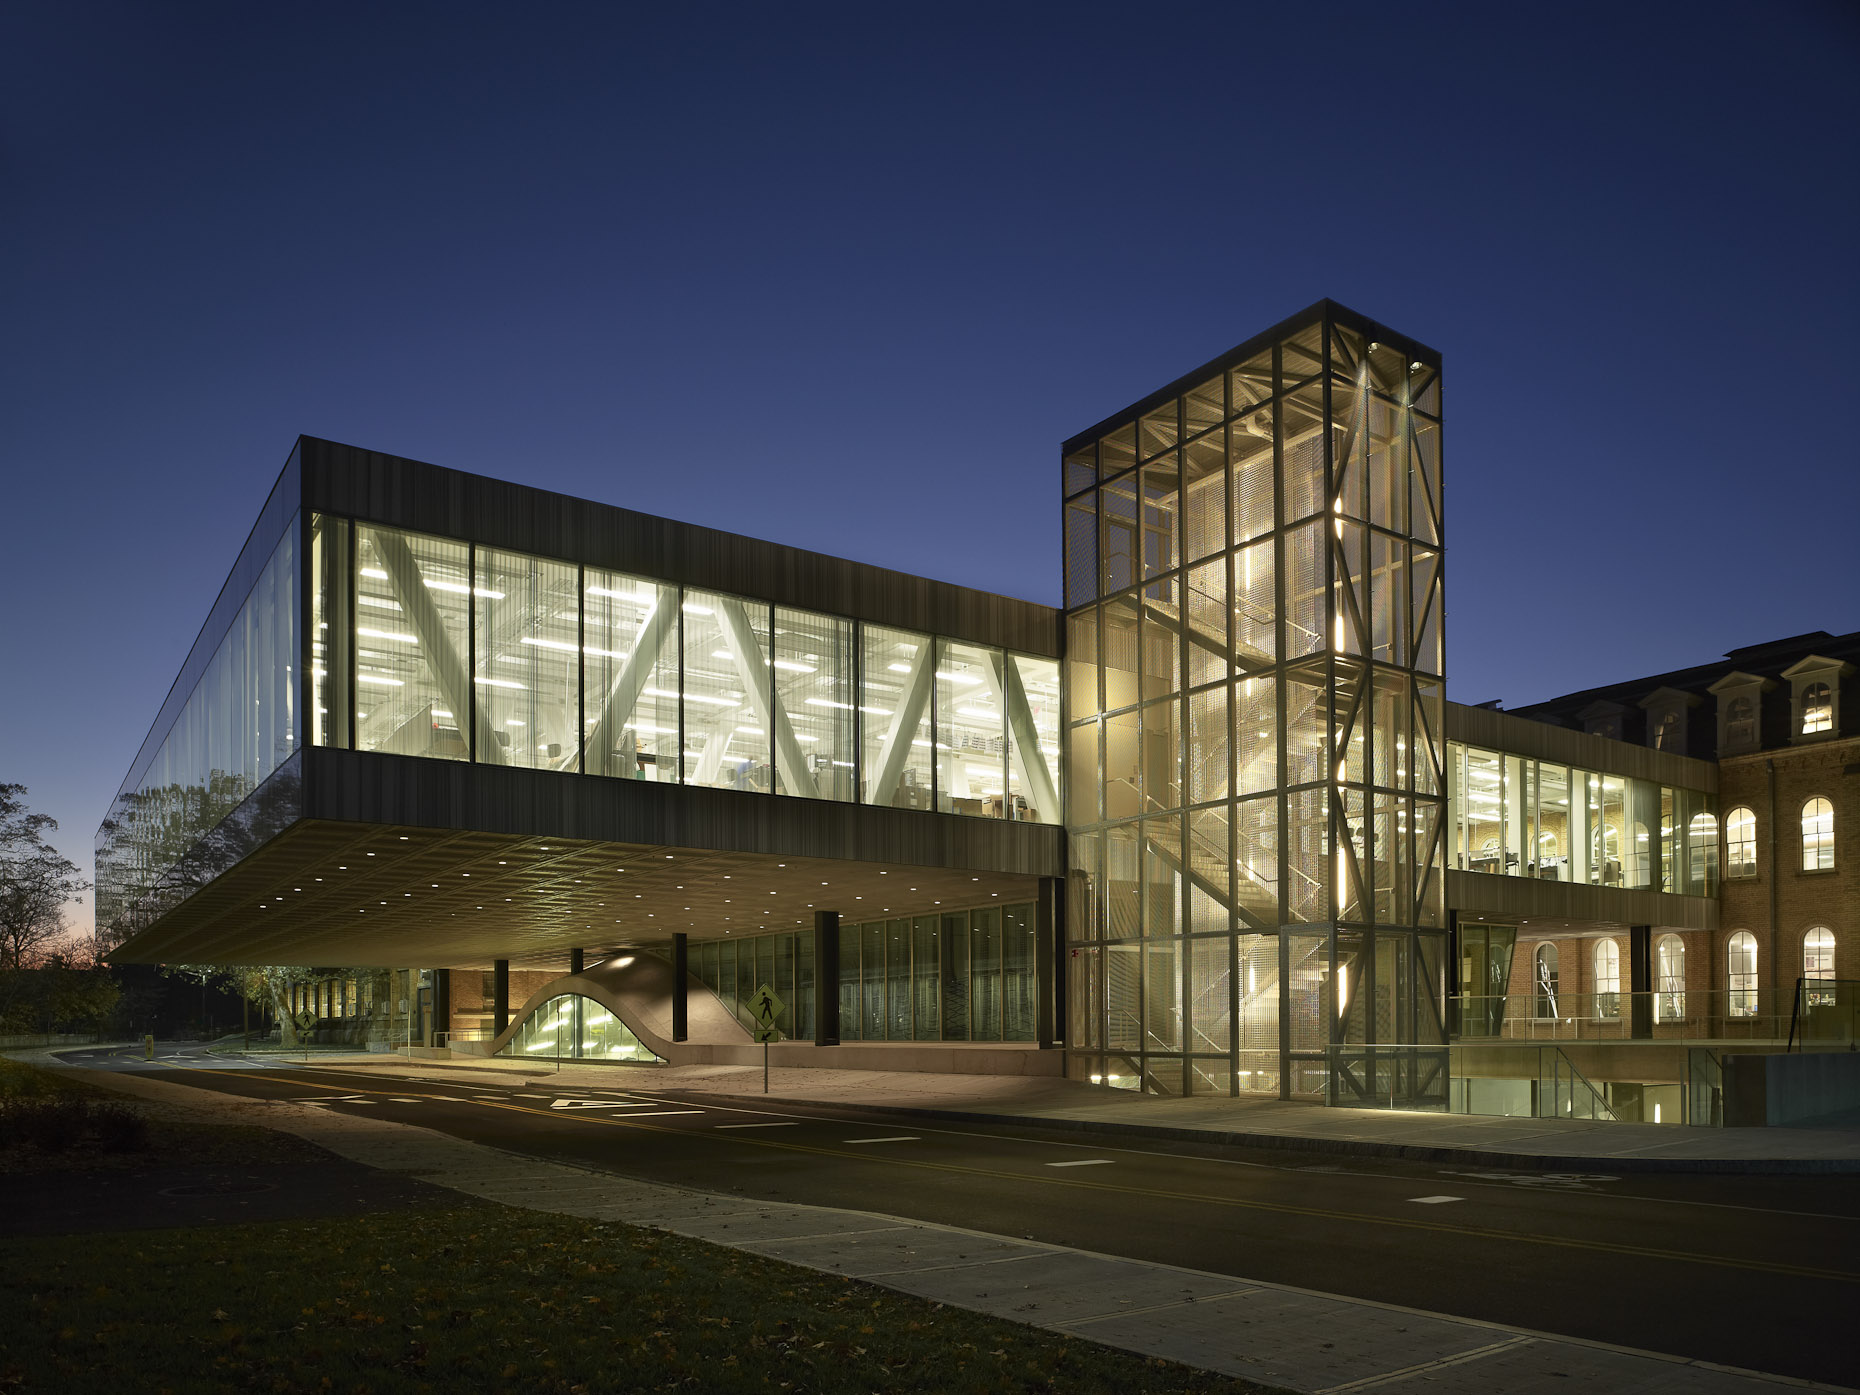 Milstein at Cornell University | OMA, photographed for: Architectural Record